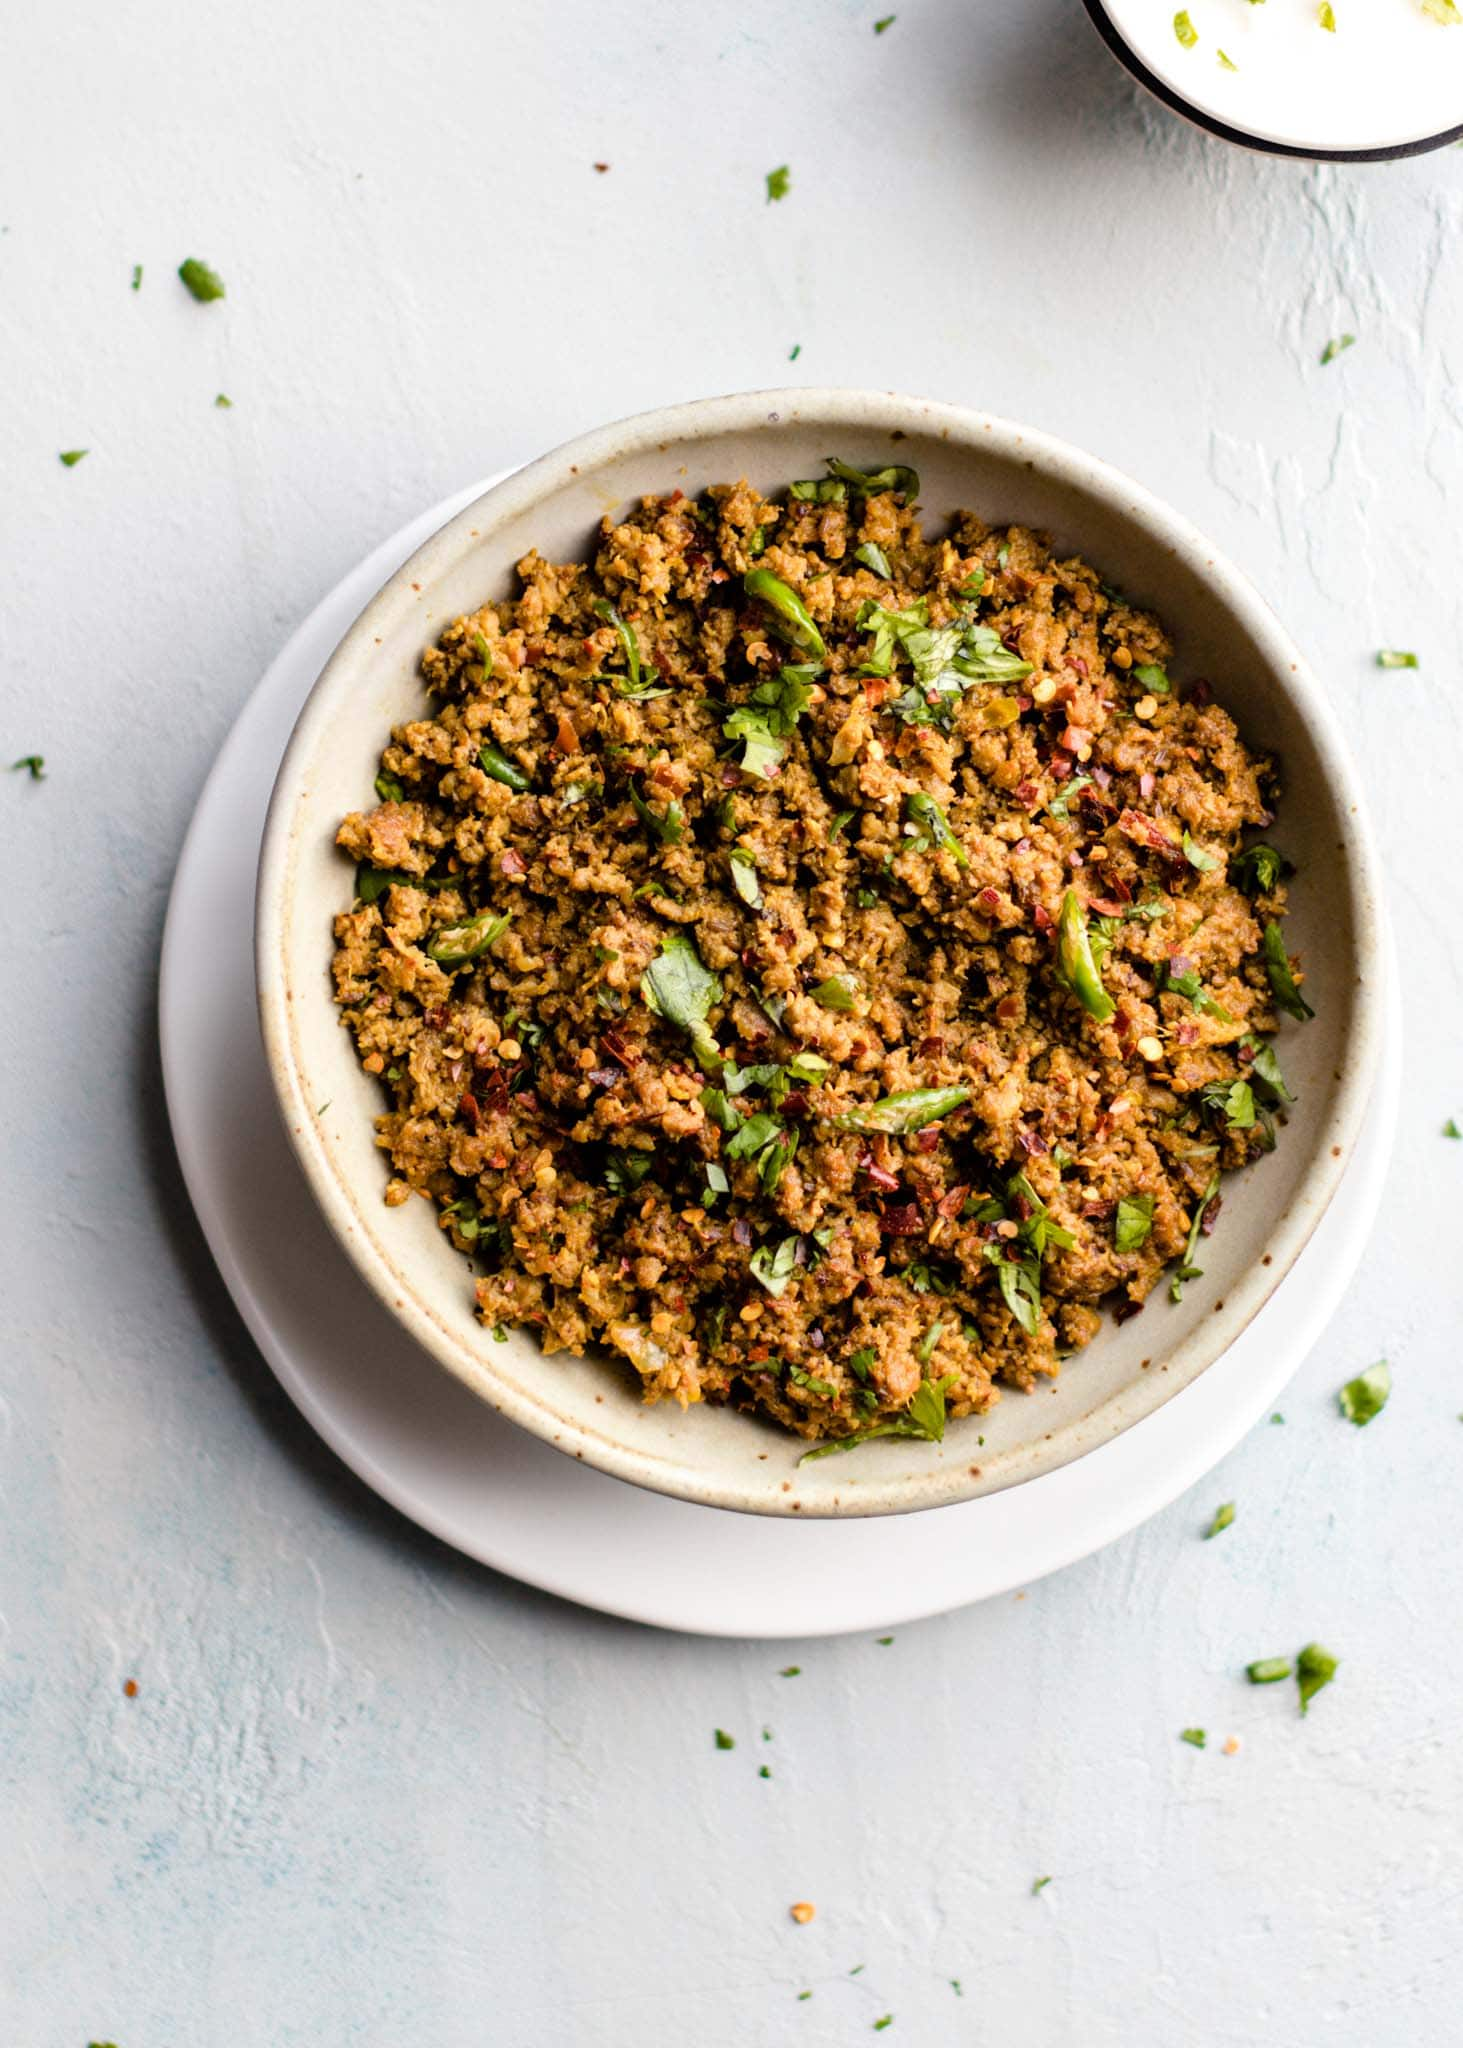 Keema in a bowl with cilantro sprinkled on top